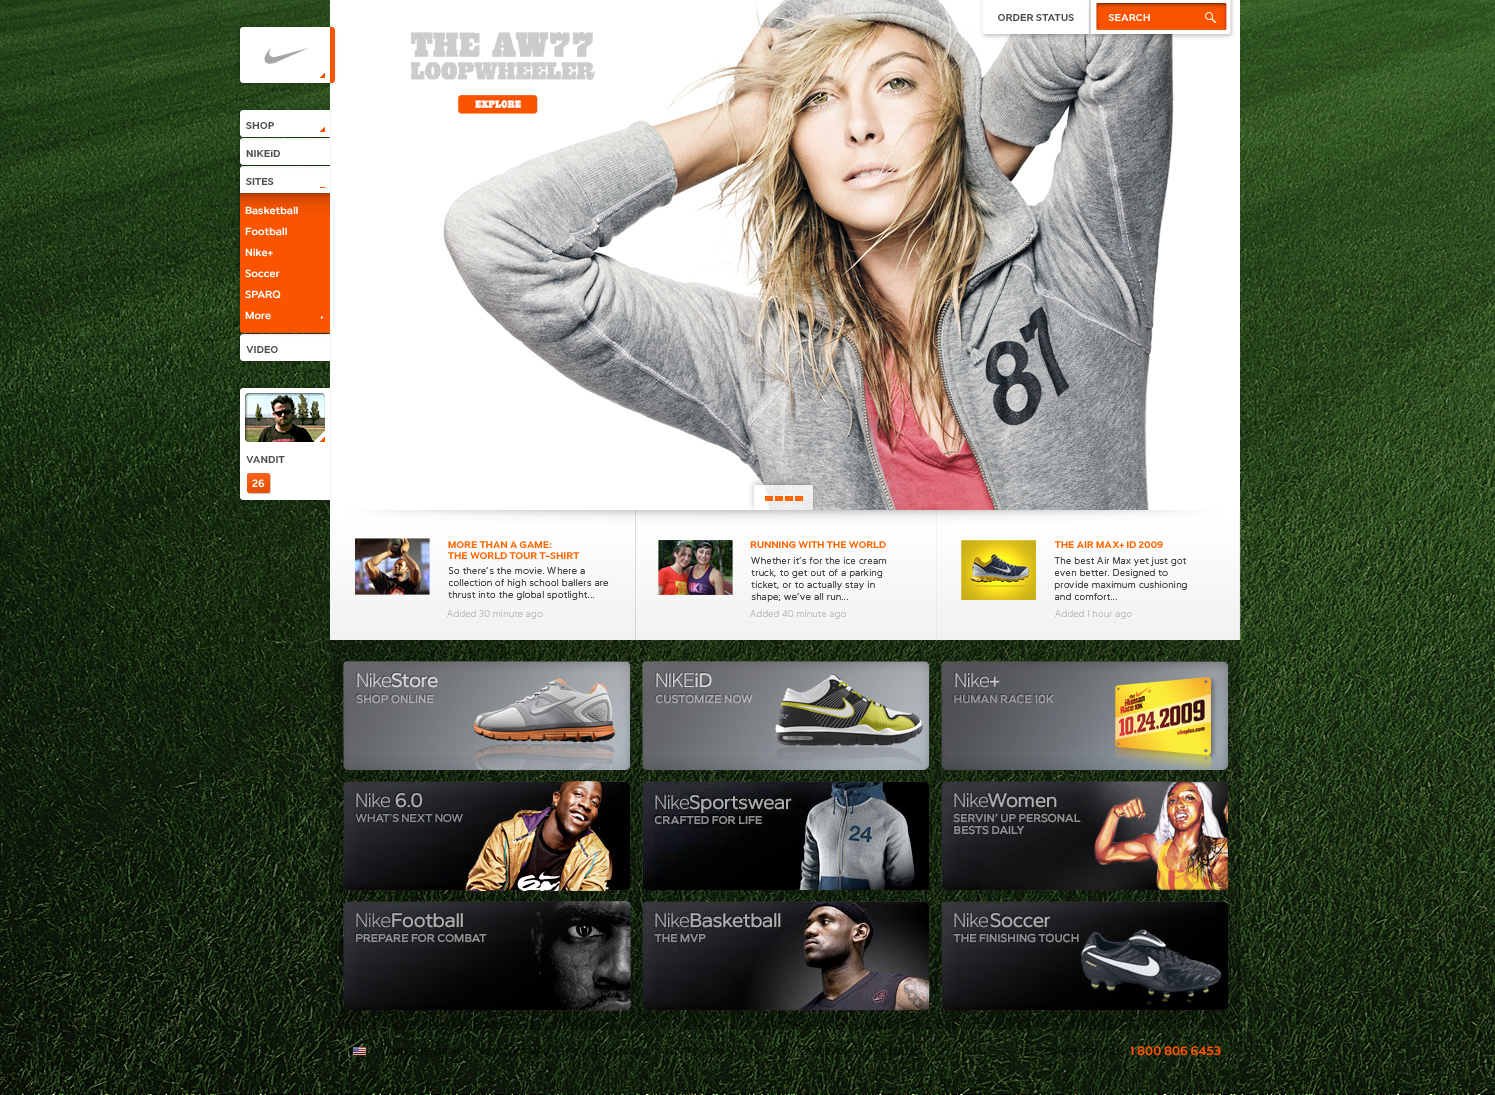 nike.com_refresh_BG8